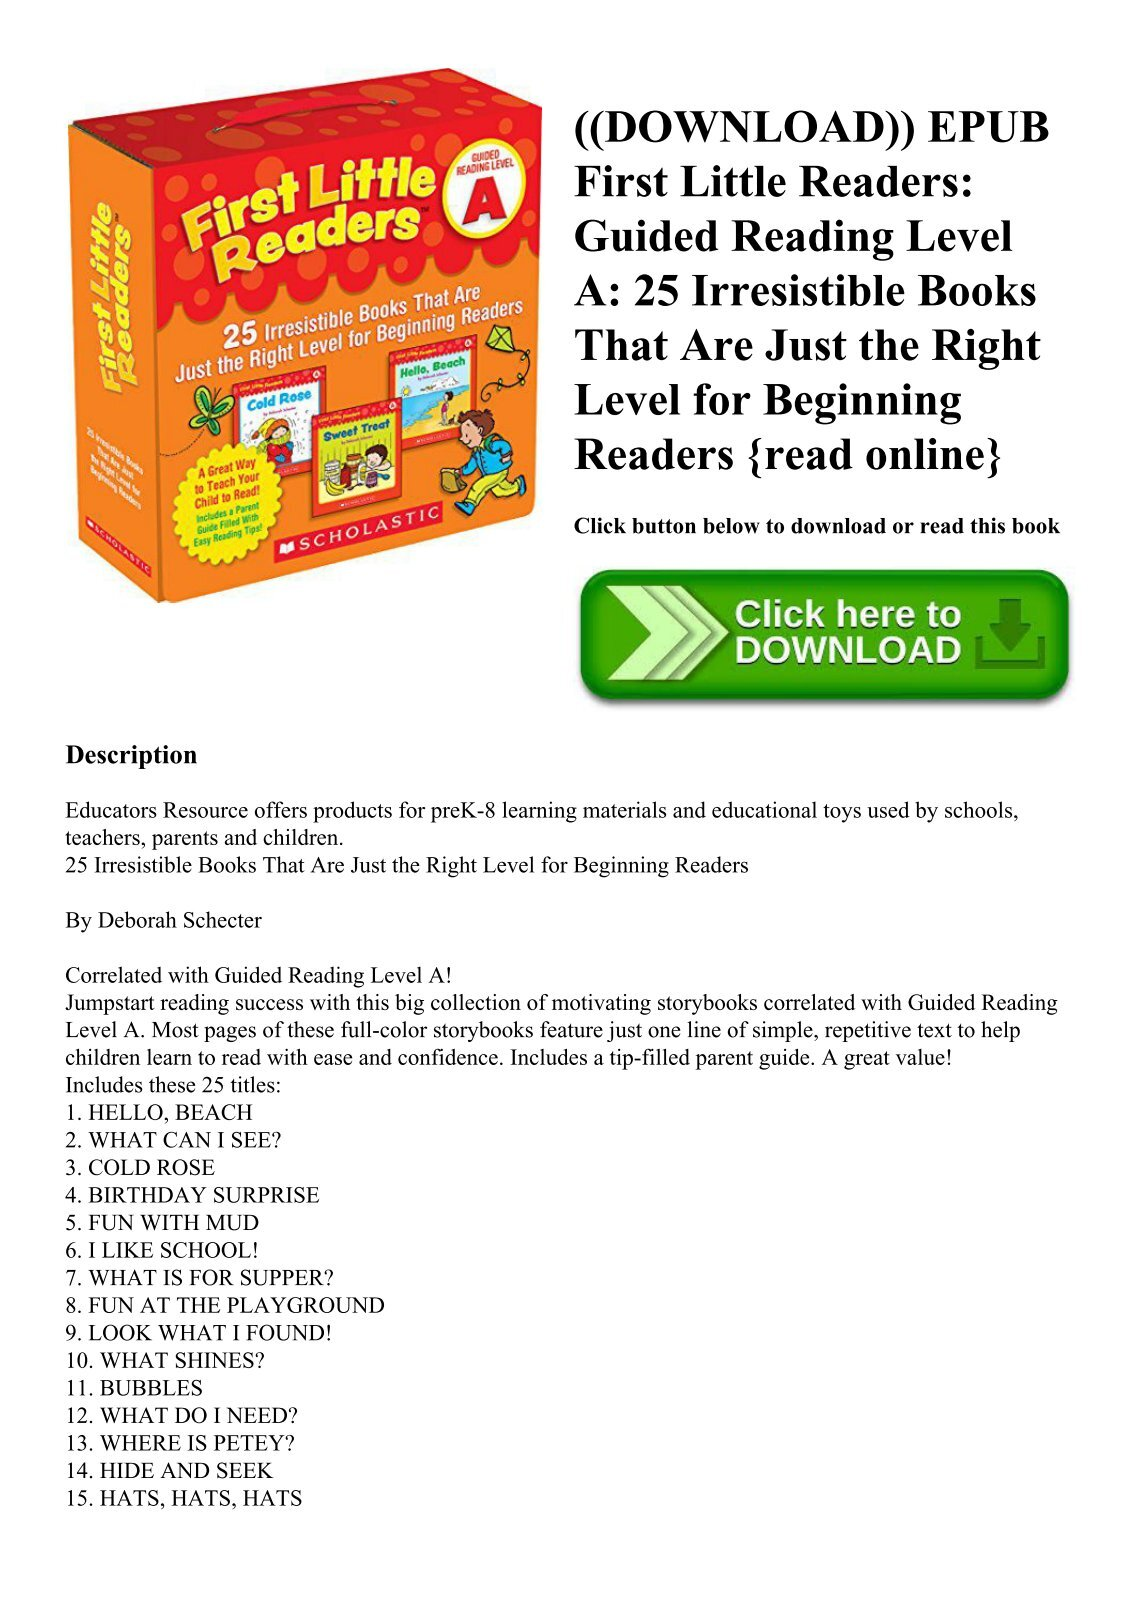 daltonfeeney. English; |; 3 Documents; |; 0 Views. ((DOWNLOAD)) EPUB First  Little Readers Guided Reading Level A 25 Irresistible Books